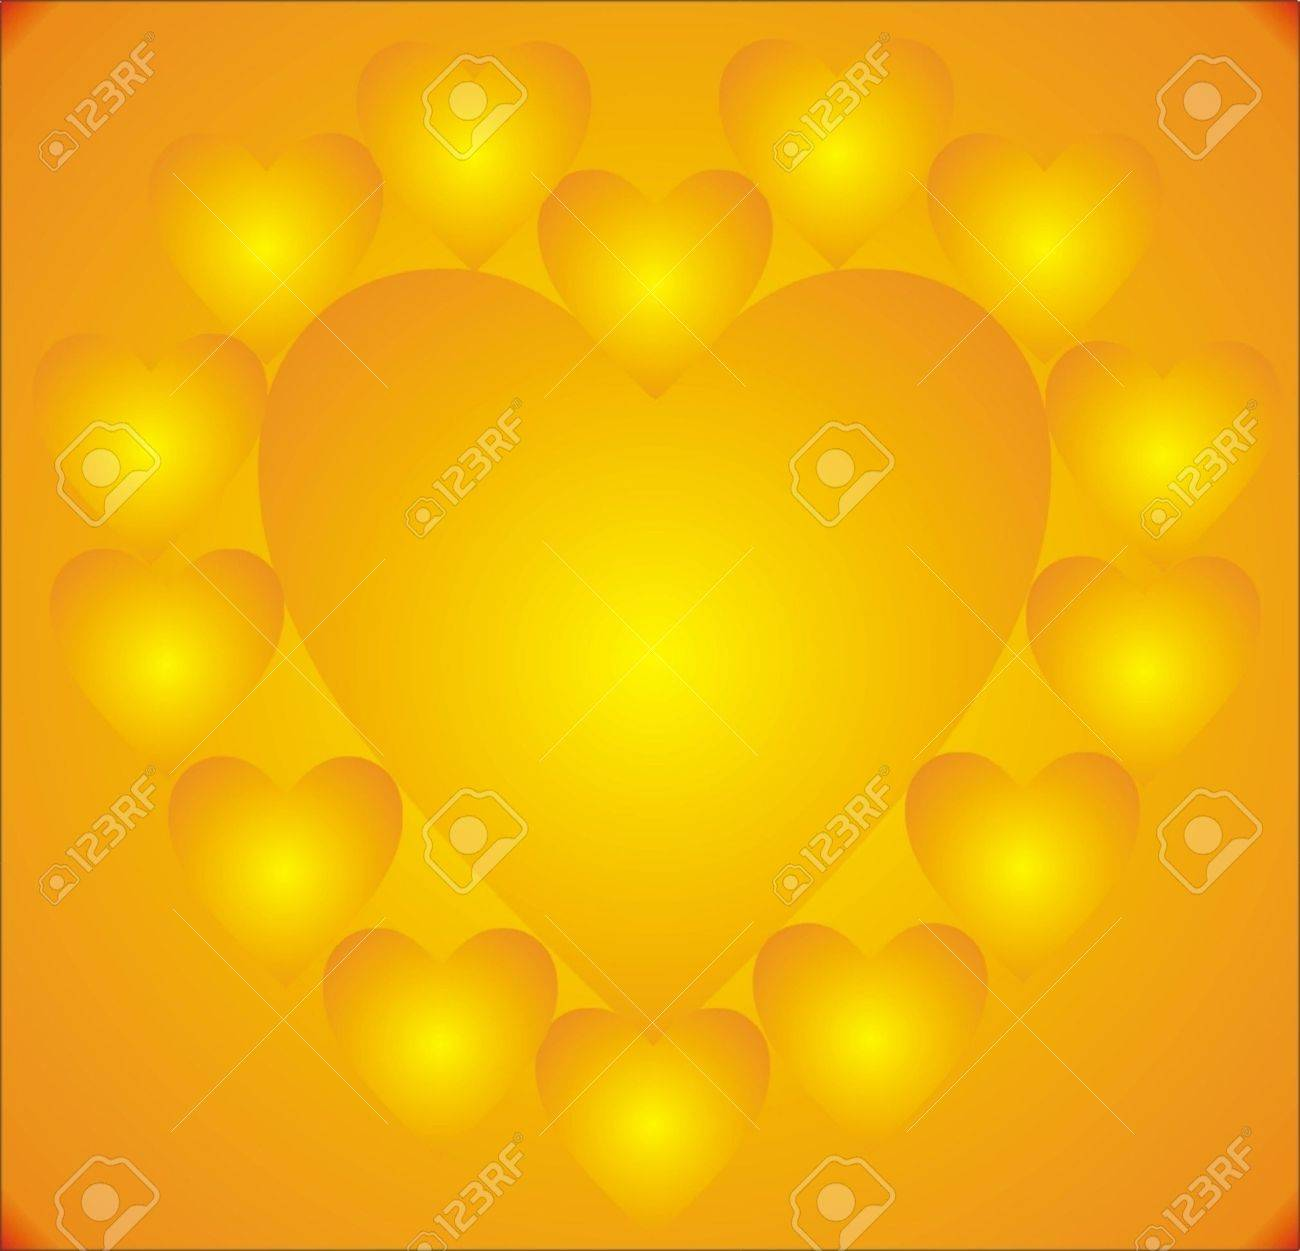 illustration, heart surrounded by hearts, in warm red and orange tones. Stock Illustration - 438263